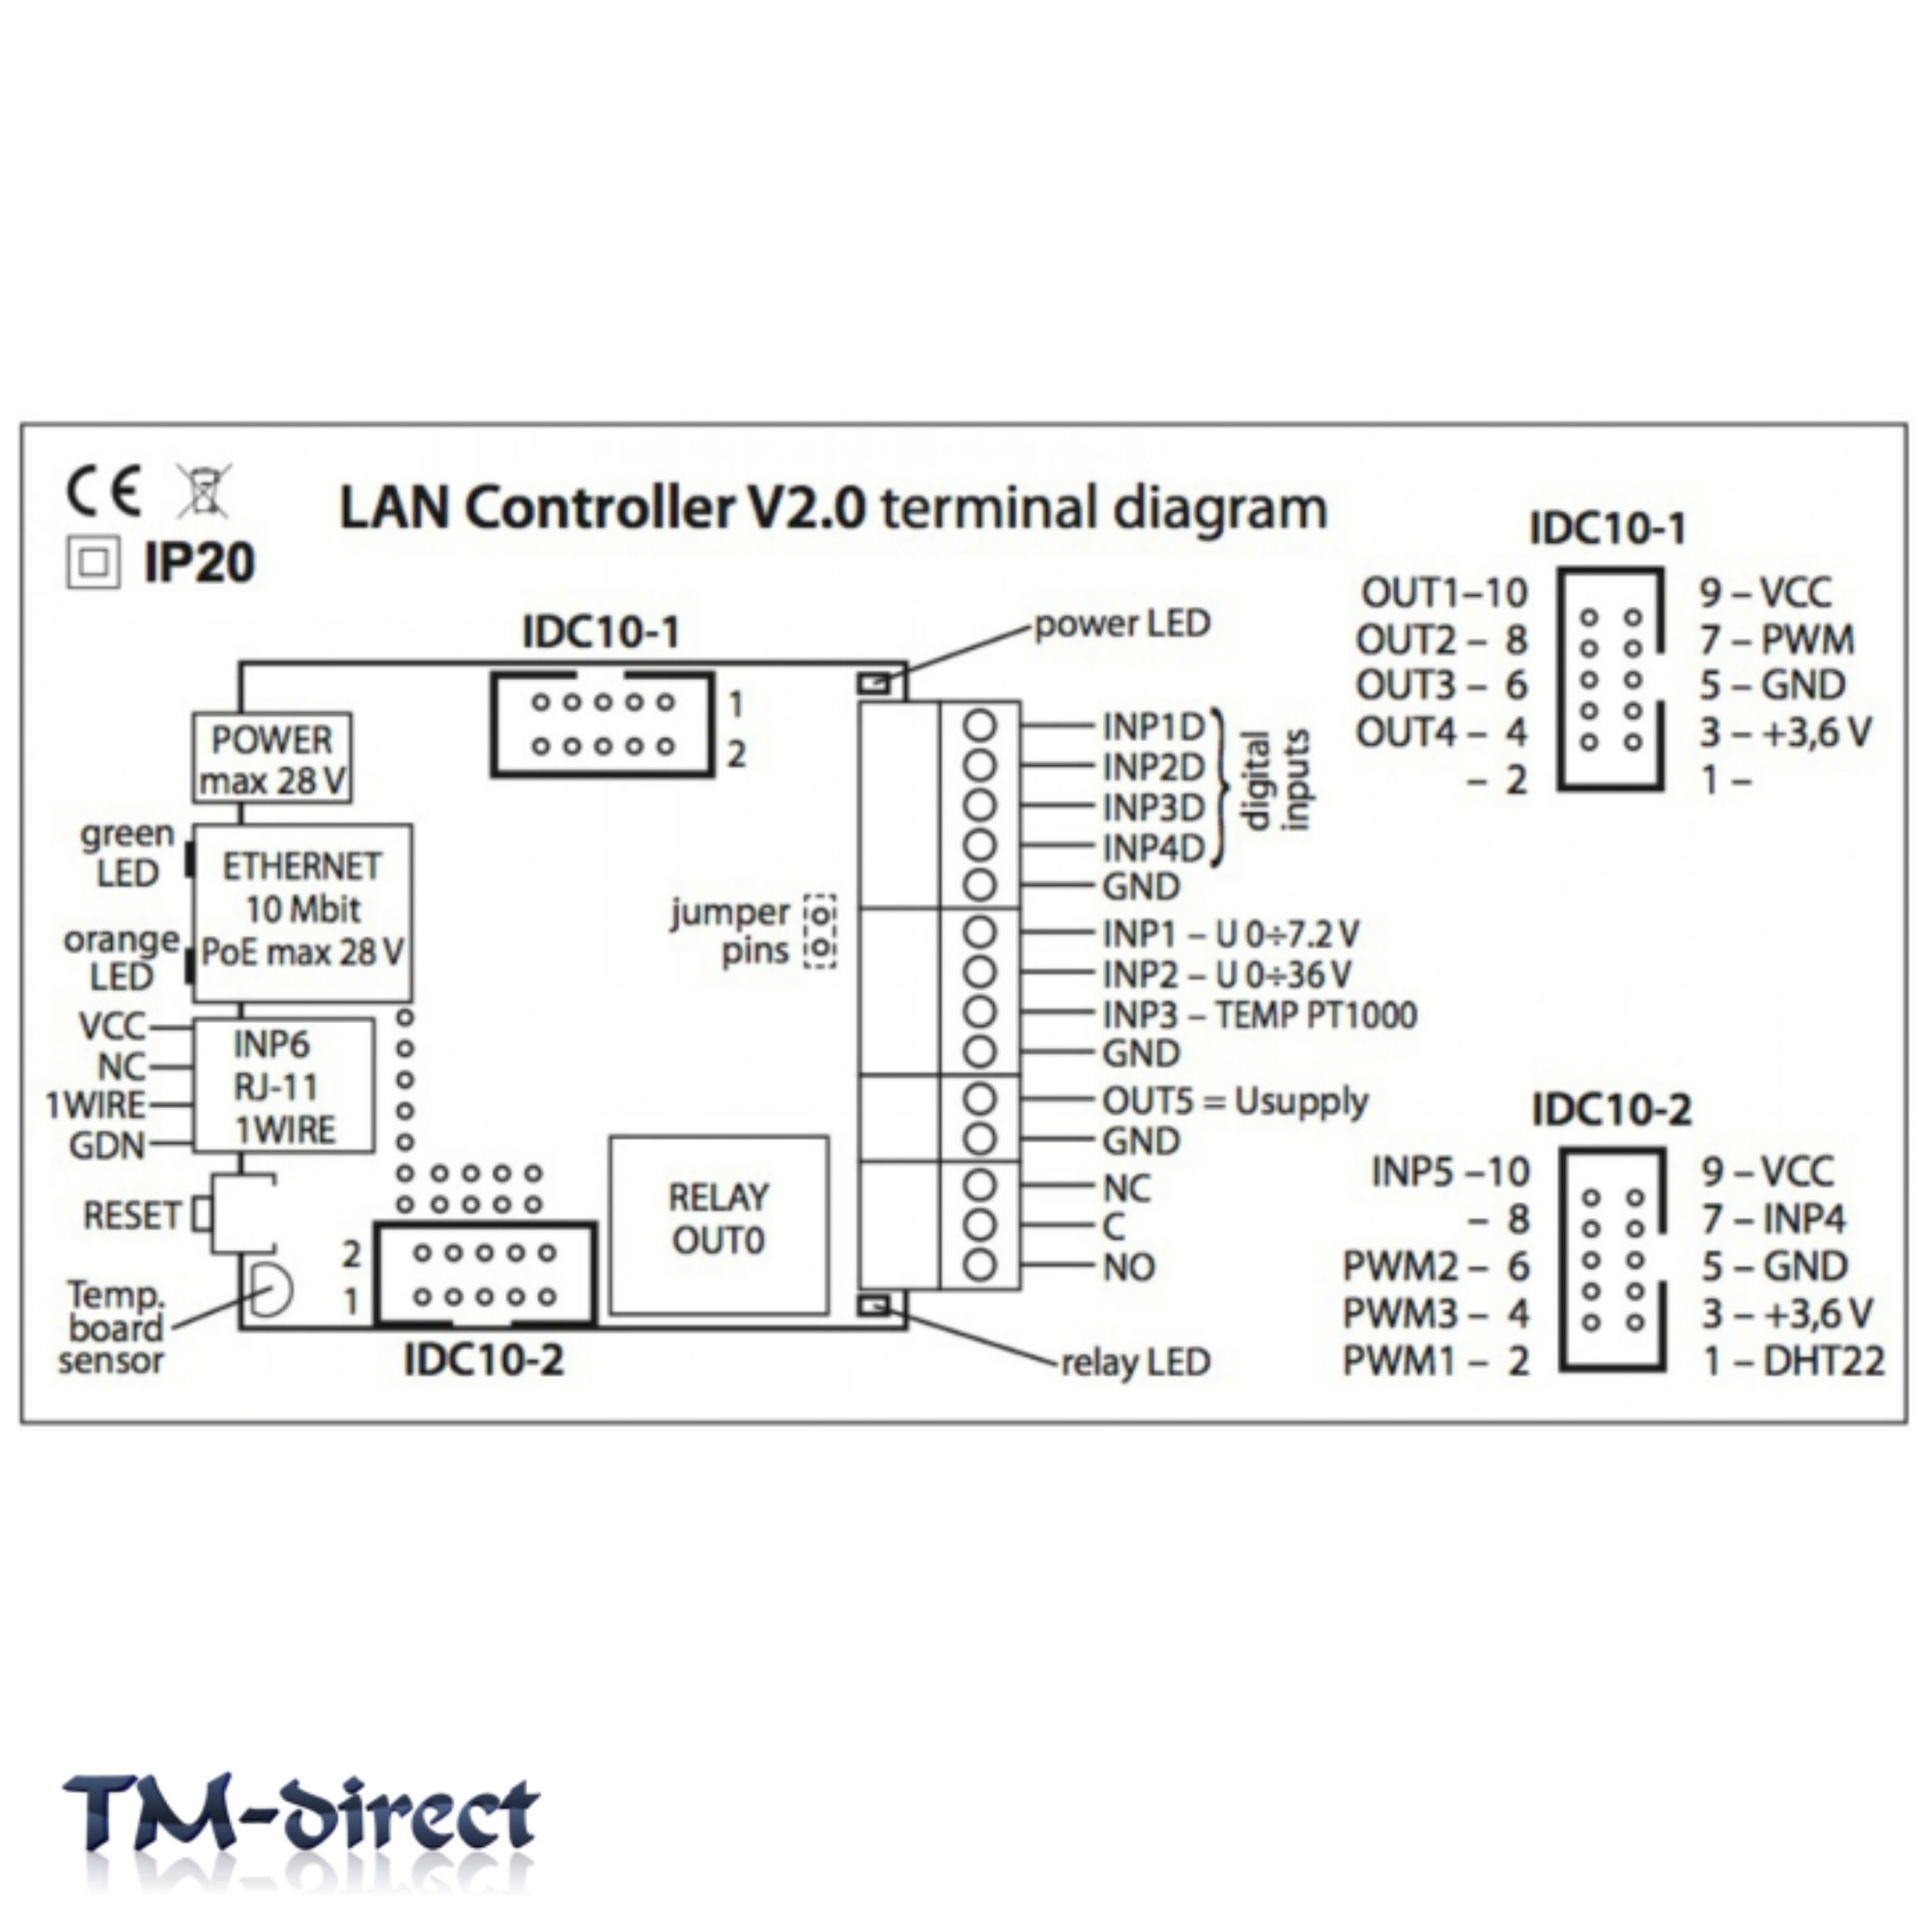 cat5e wiring diagram whats for home lan